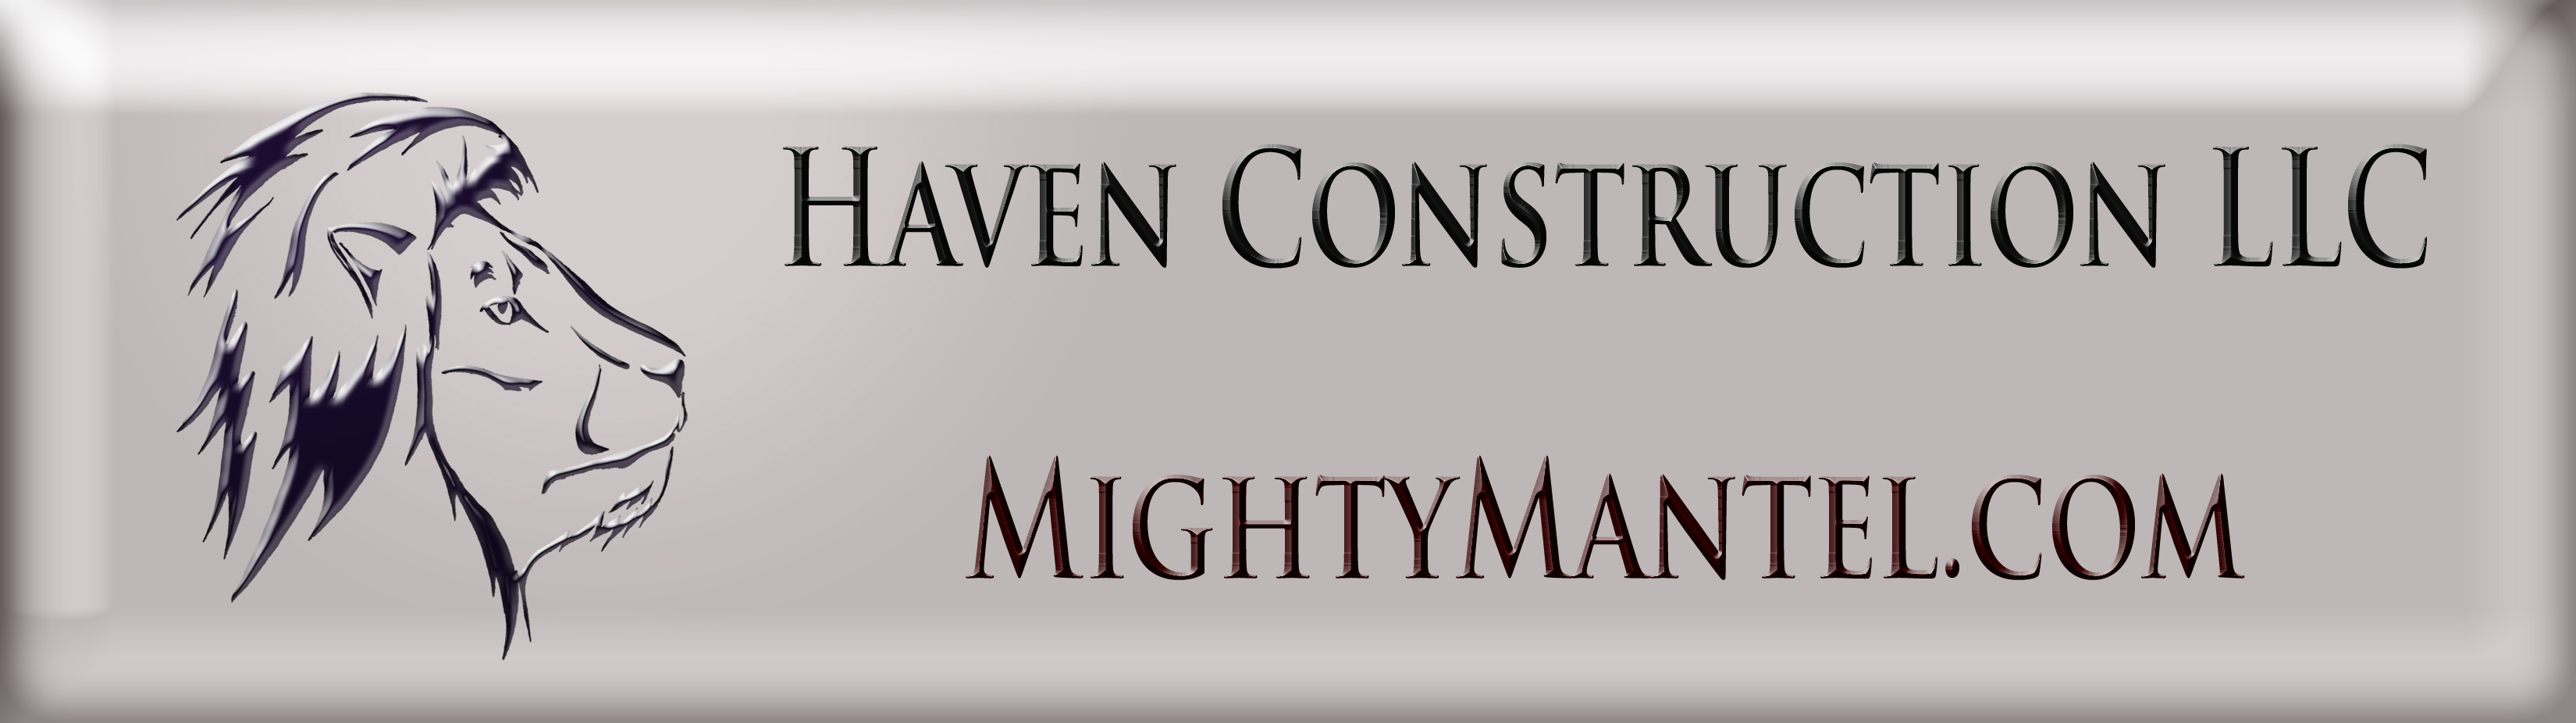 Haven Construction Llc